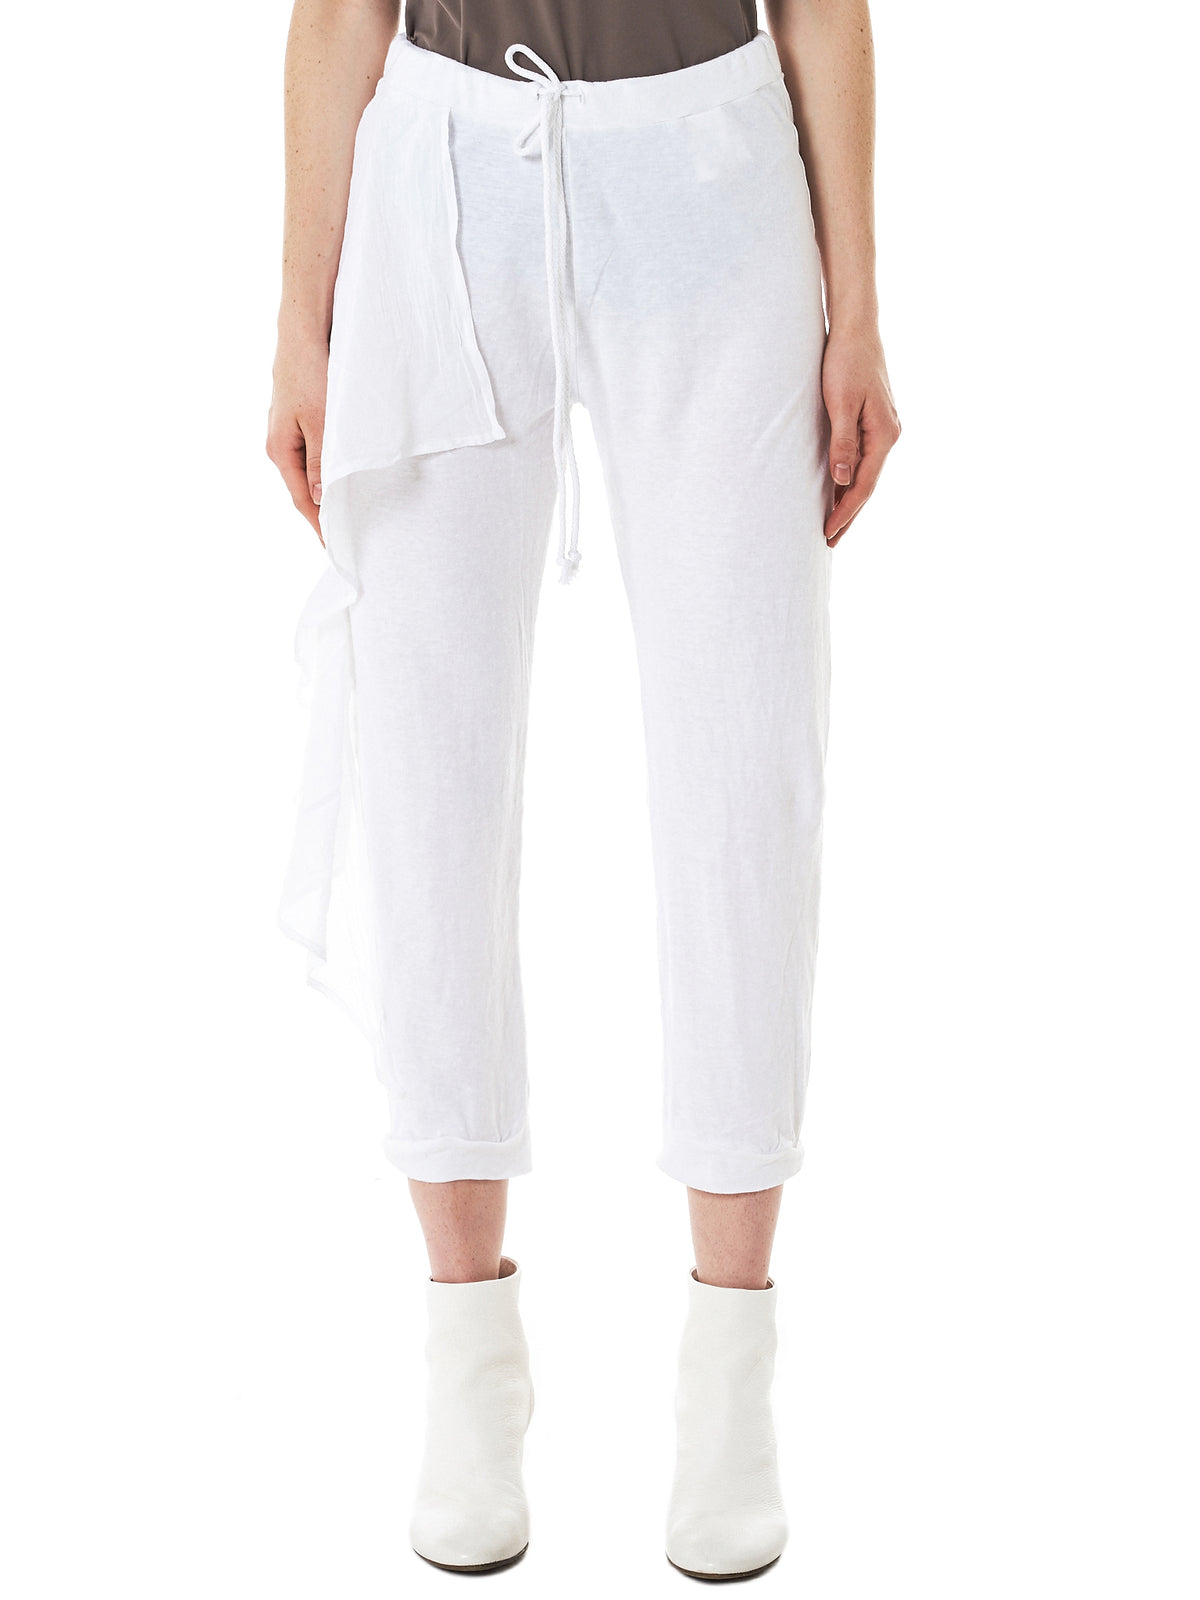 double waist trousers - White Lost And Found Rooms fPOh8Rn7I